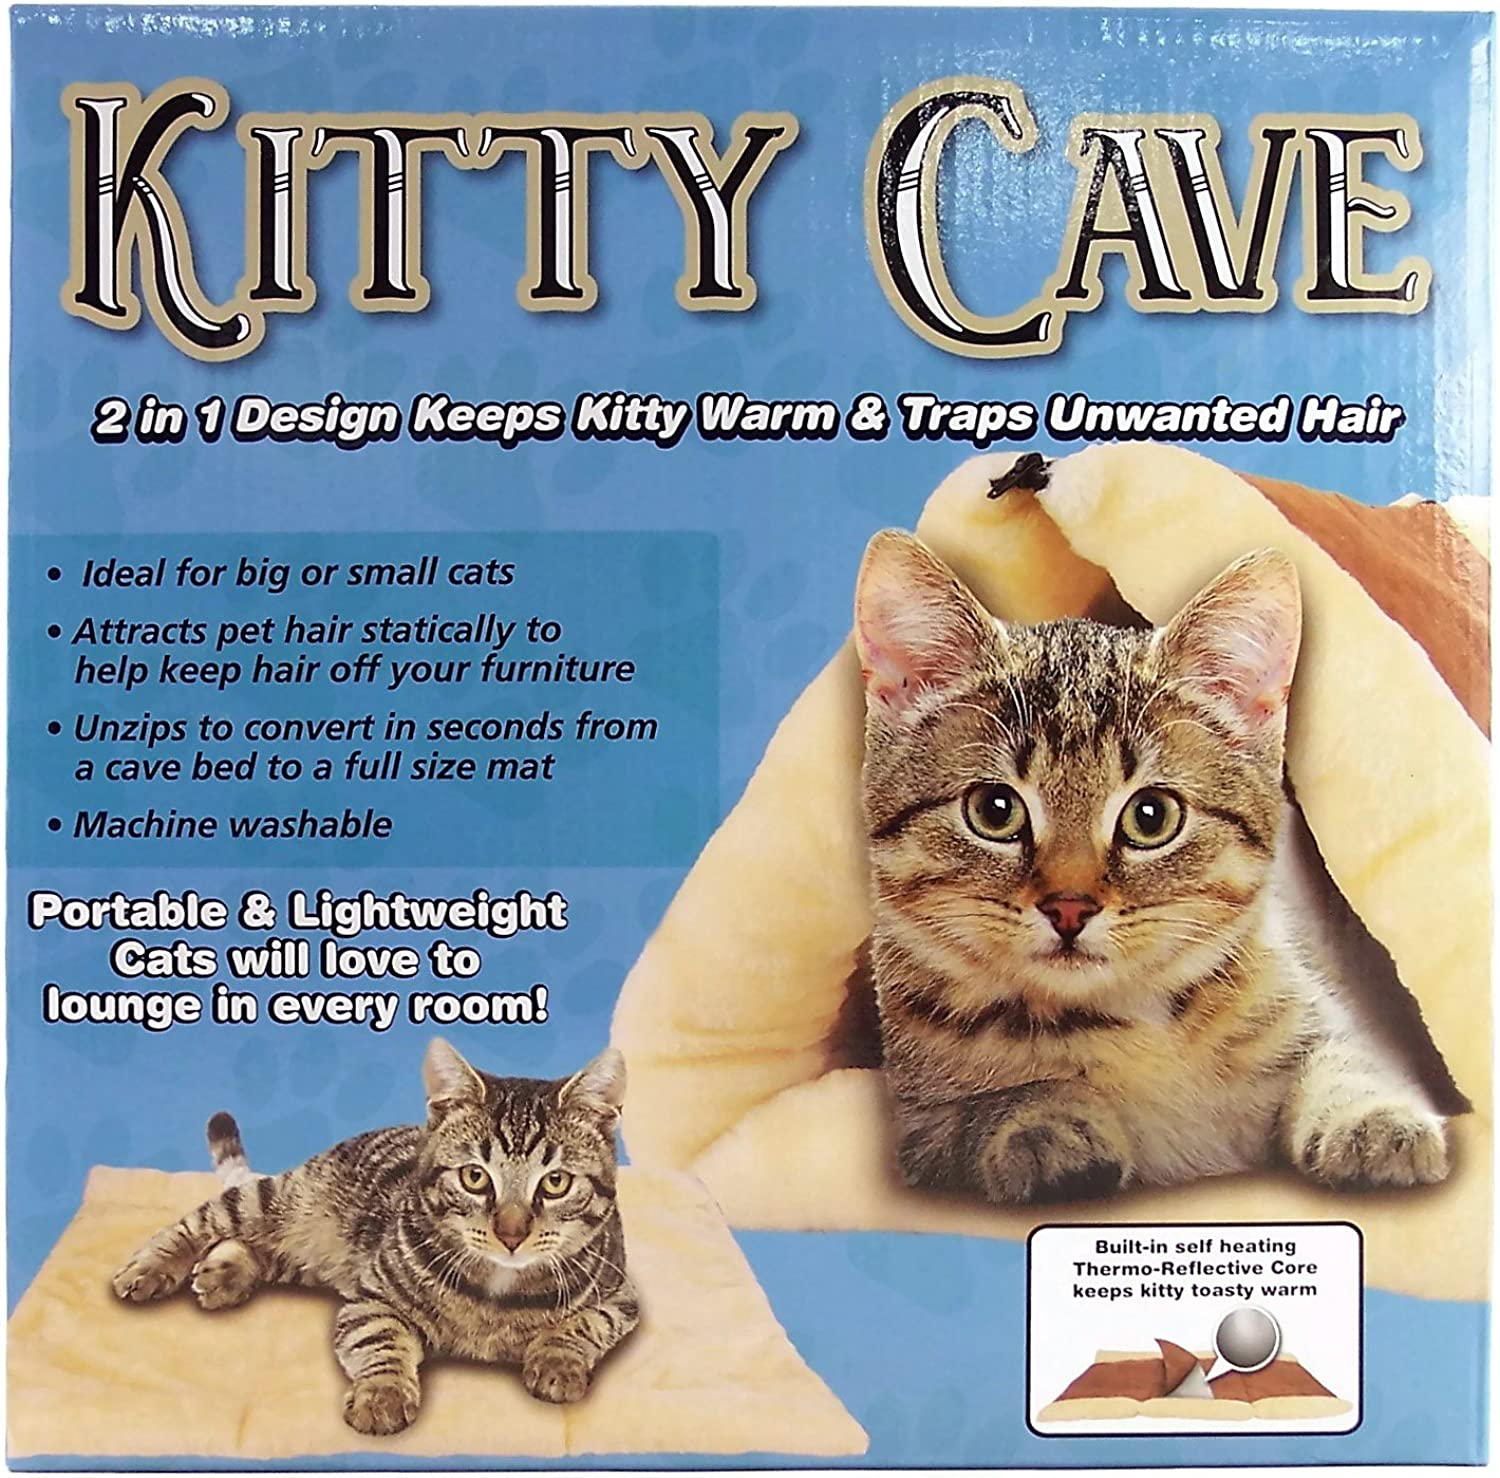 Kitty Cave 2 in 1 Fleece Tunnel or Mat Measures 36  x 23  Flat color is Brown and Tan